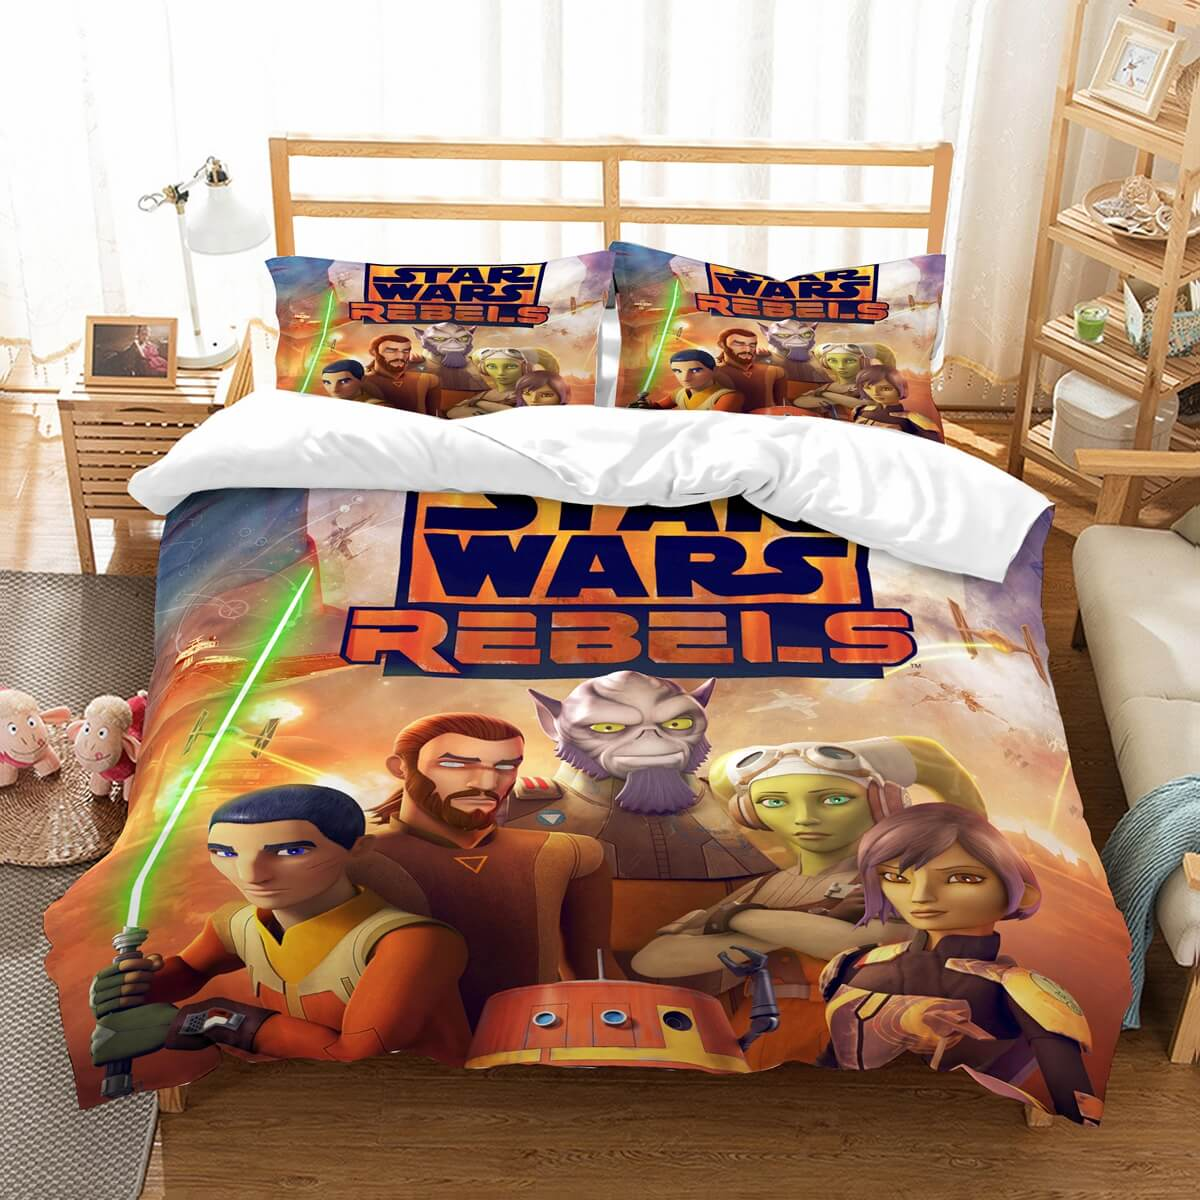 3D Customize Star Wars Rebels Bedding Set Duvet Cover Set Bedroom Set Bedlinen